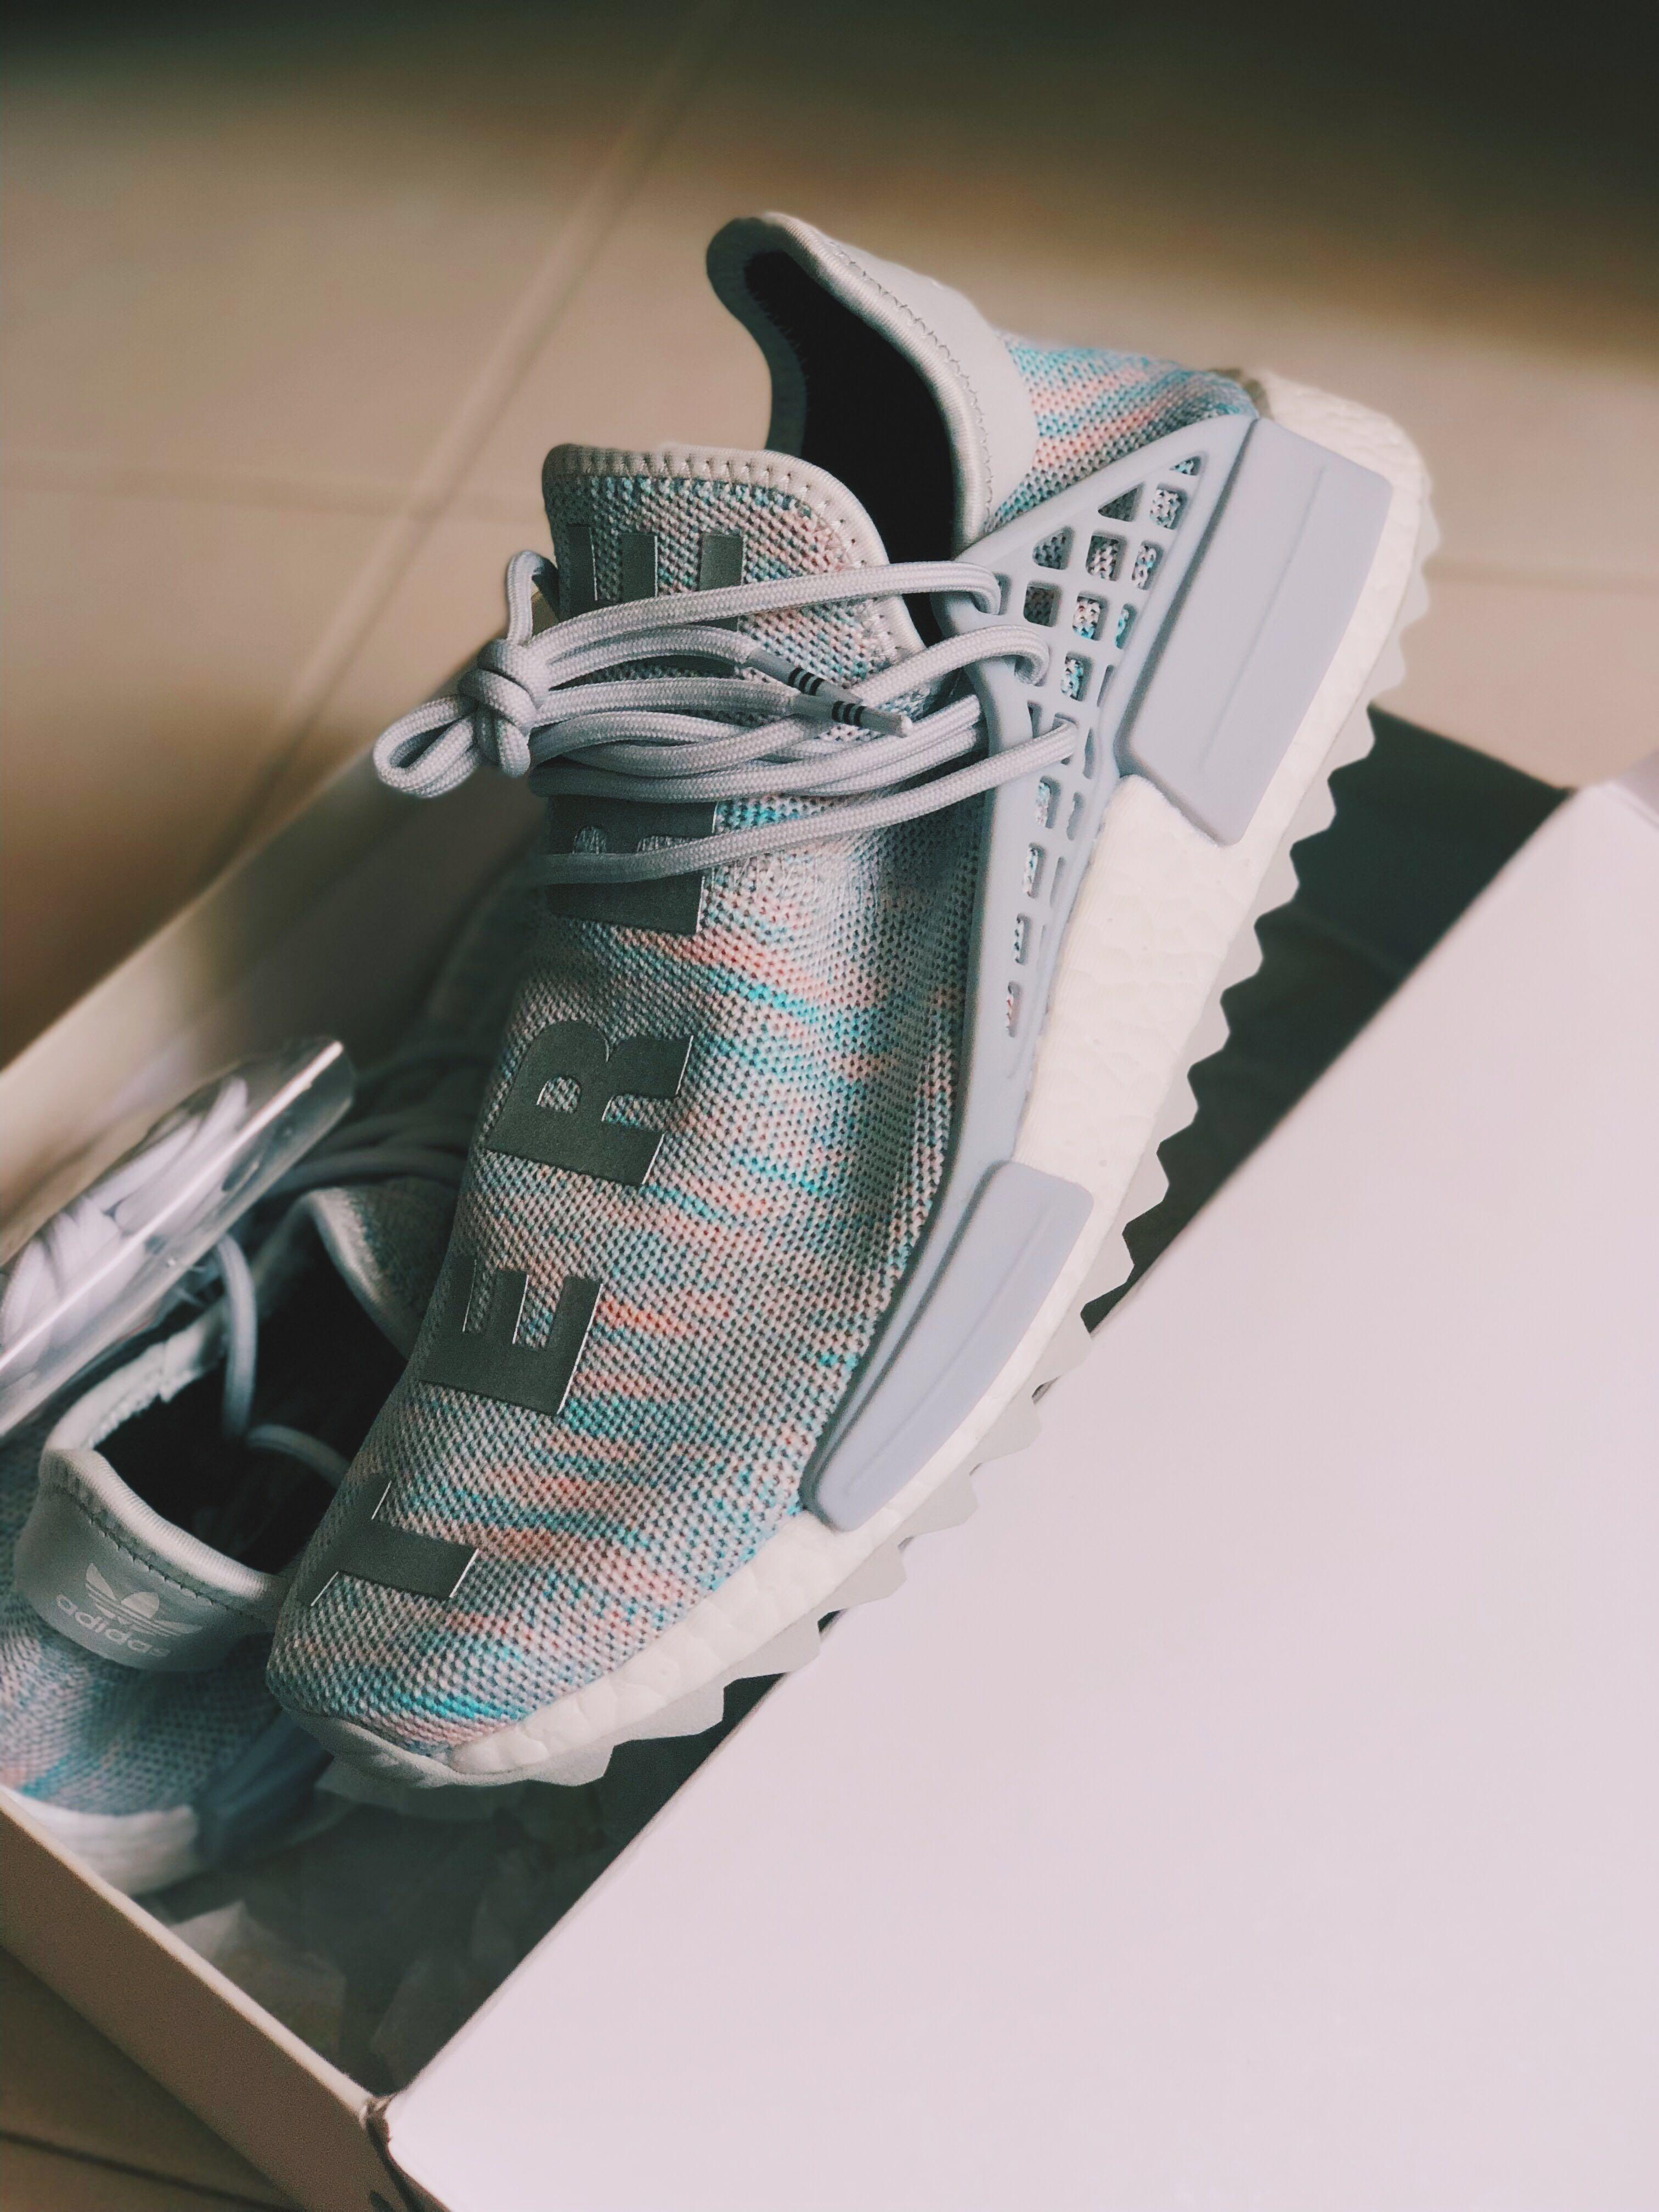 new product 2cc7f 32050 BBC x Human Race NMD Cotton Candy, Men's Fashion, Footwear ...